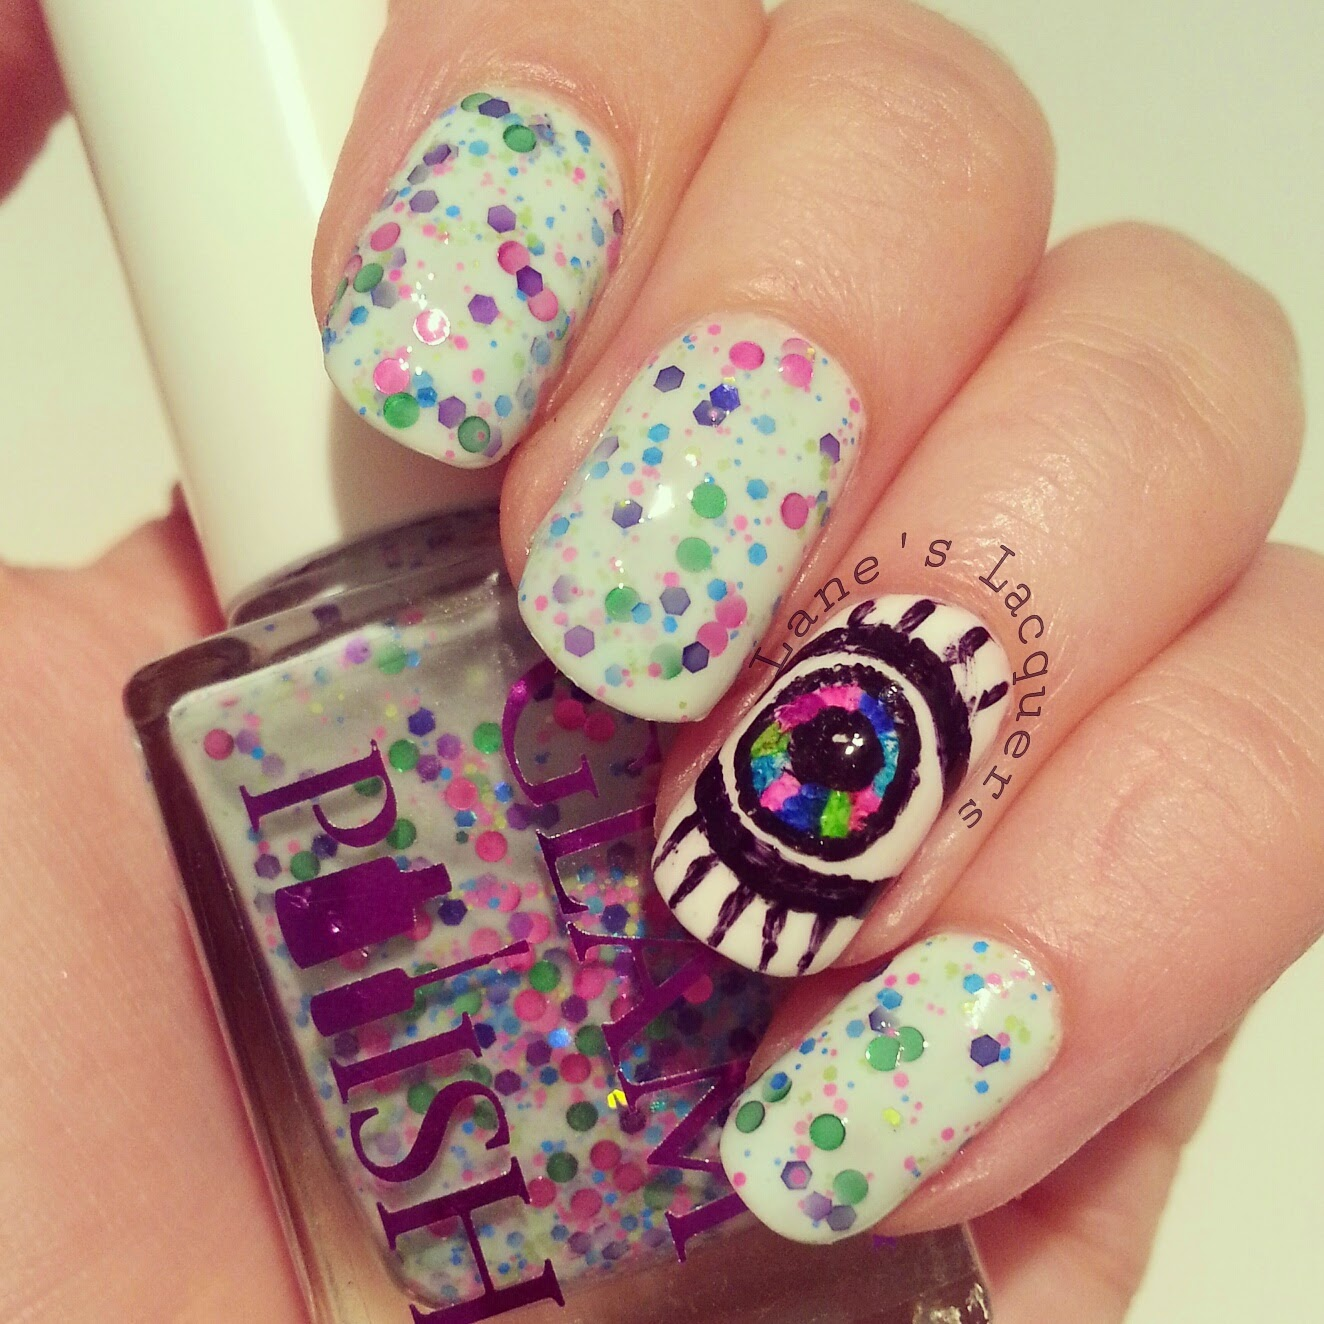 glam-polish-kaleidescope-eyes-nail-art (2)